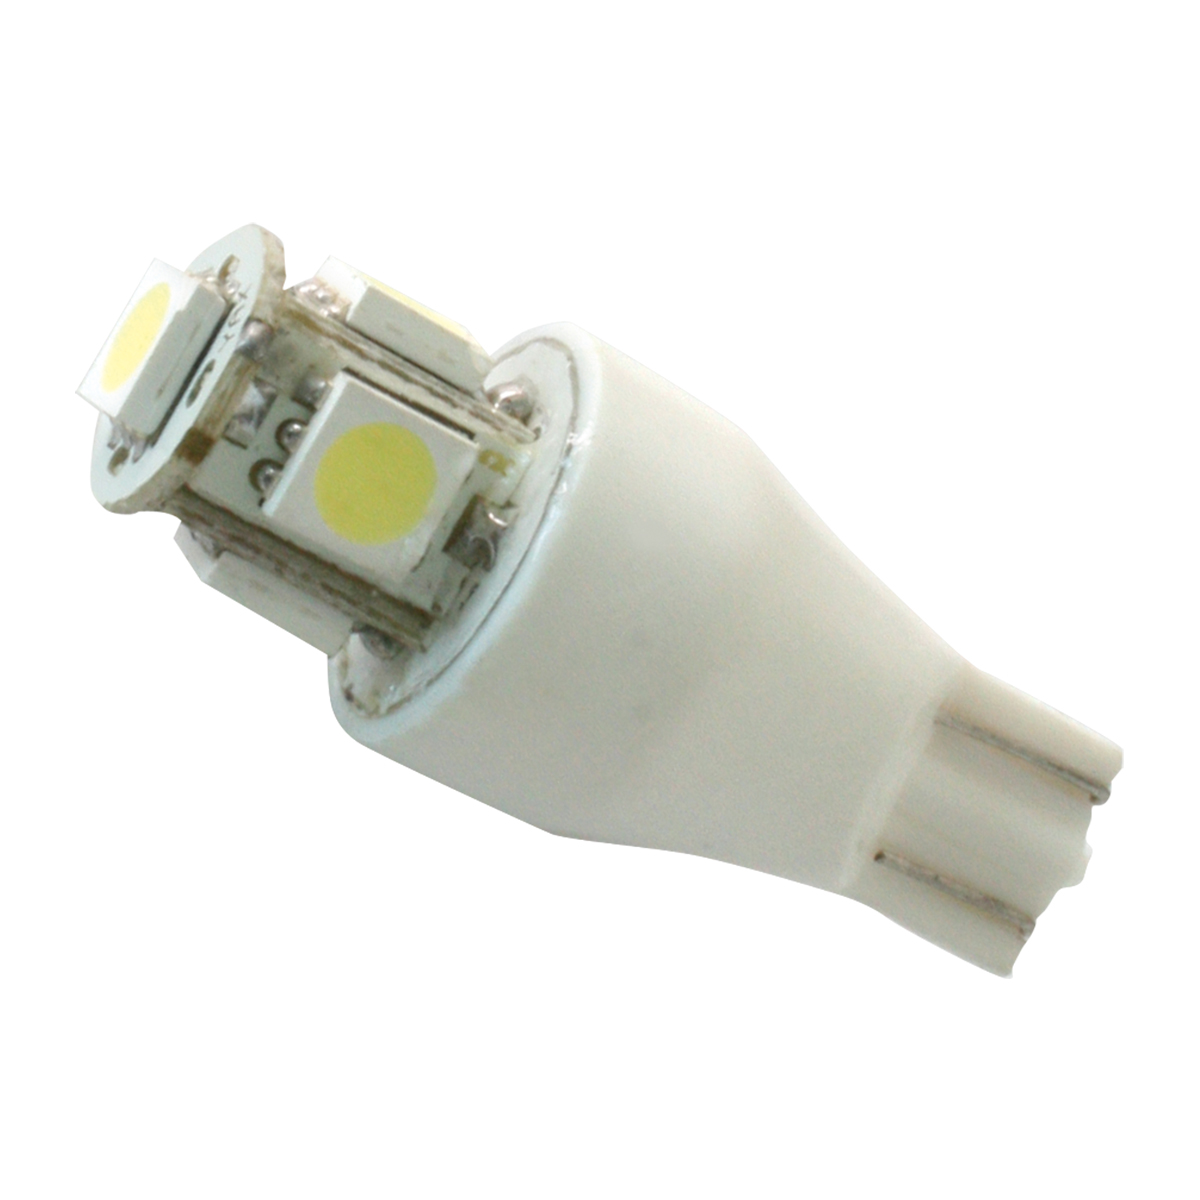 74934 White 921/912 Tower Style 5 LED Light Bulb